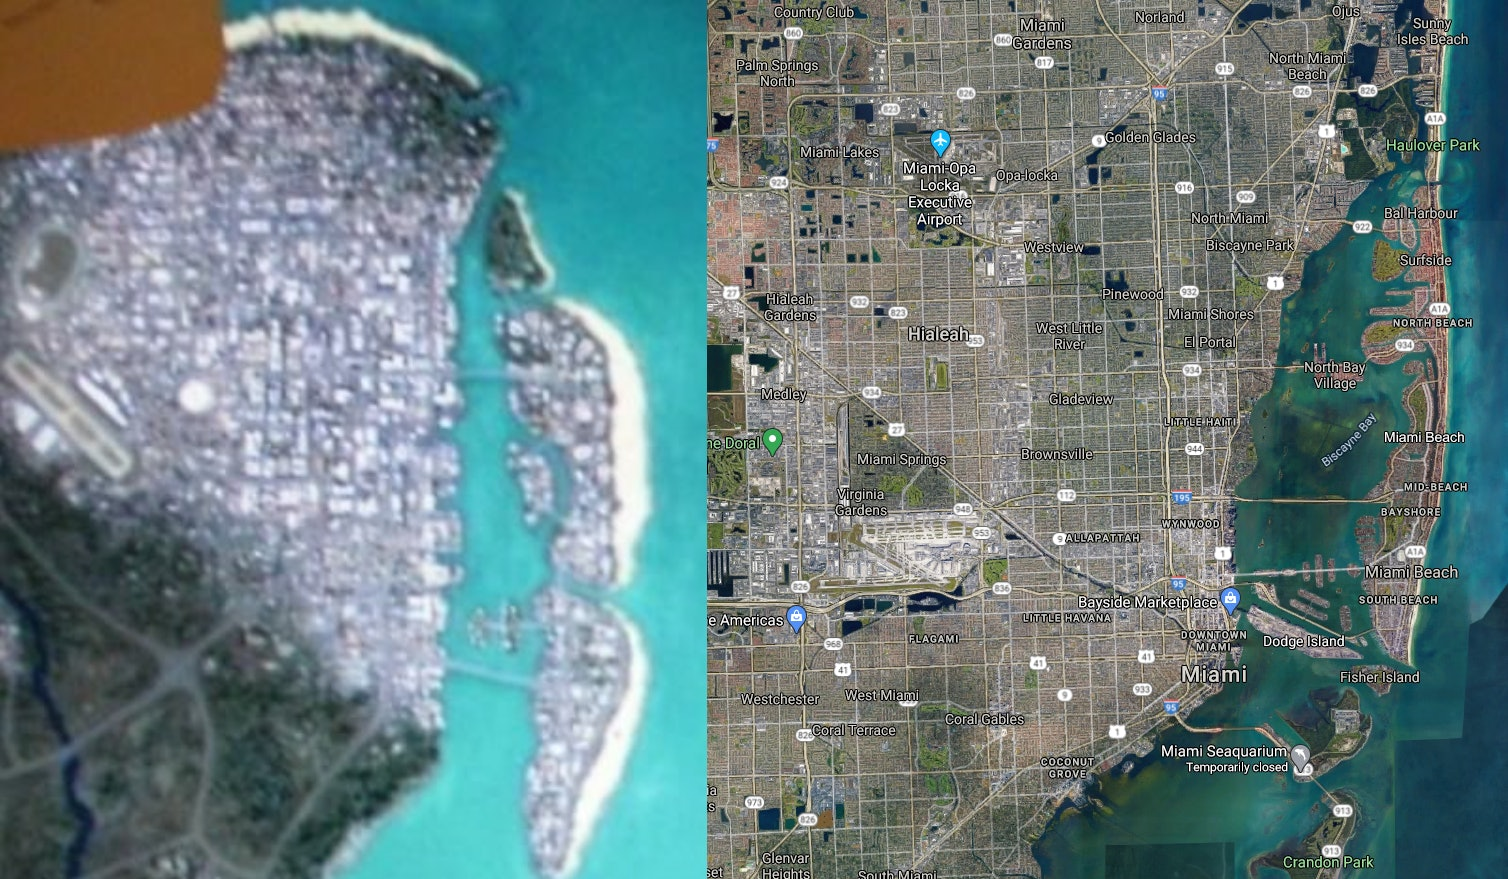 Gta 6 Map Leak Seemingly Confirms Project Americas Rumors